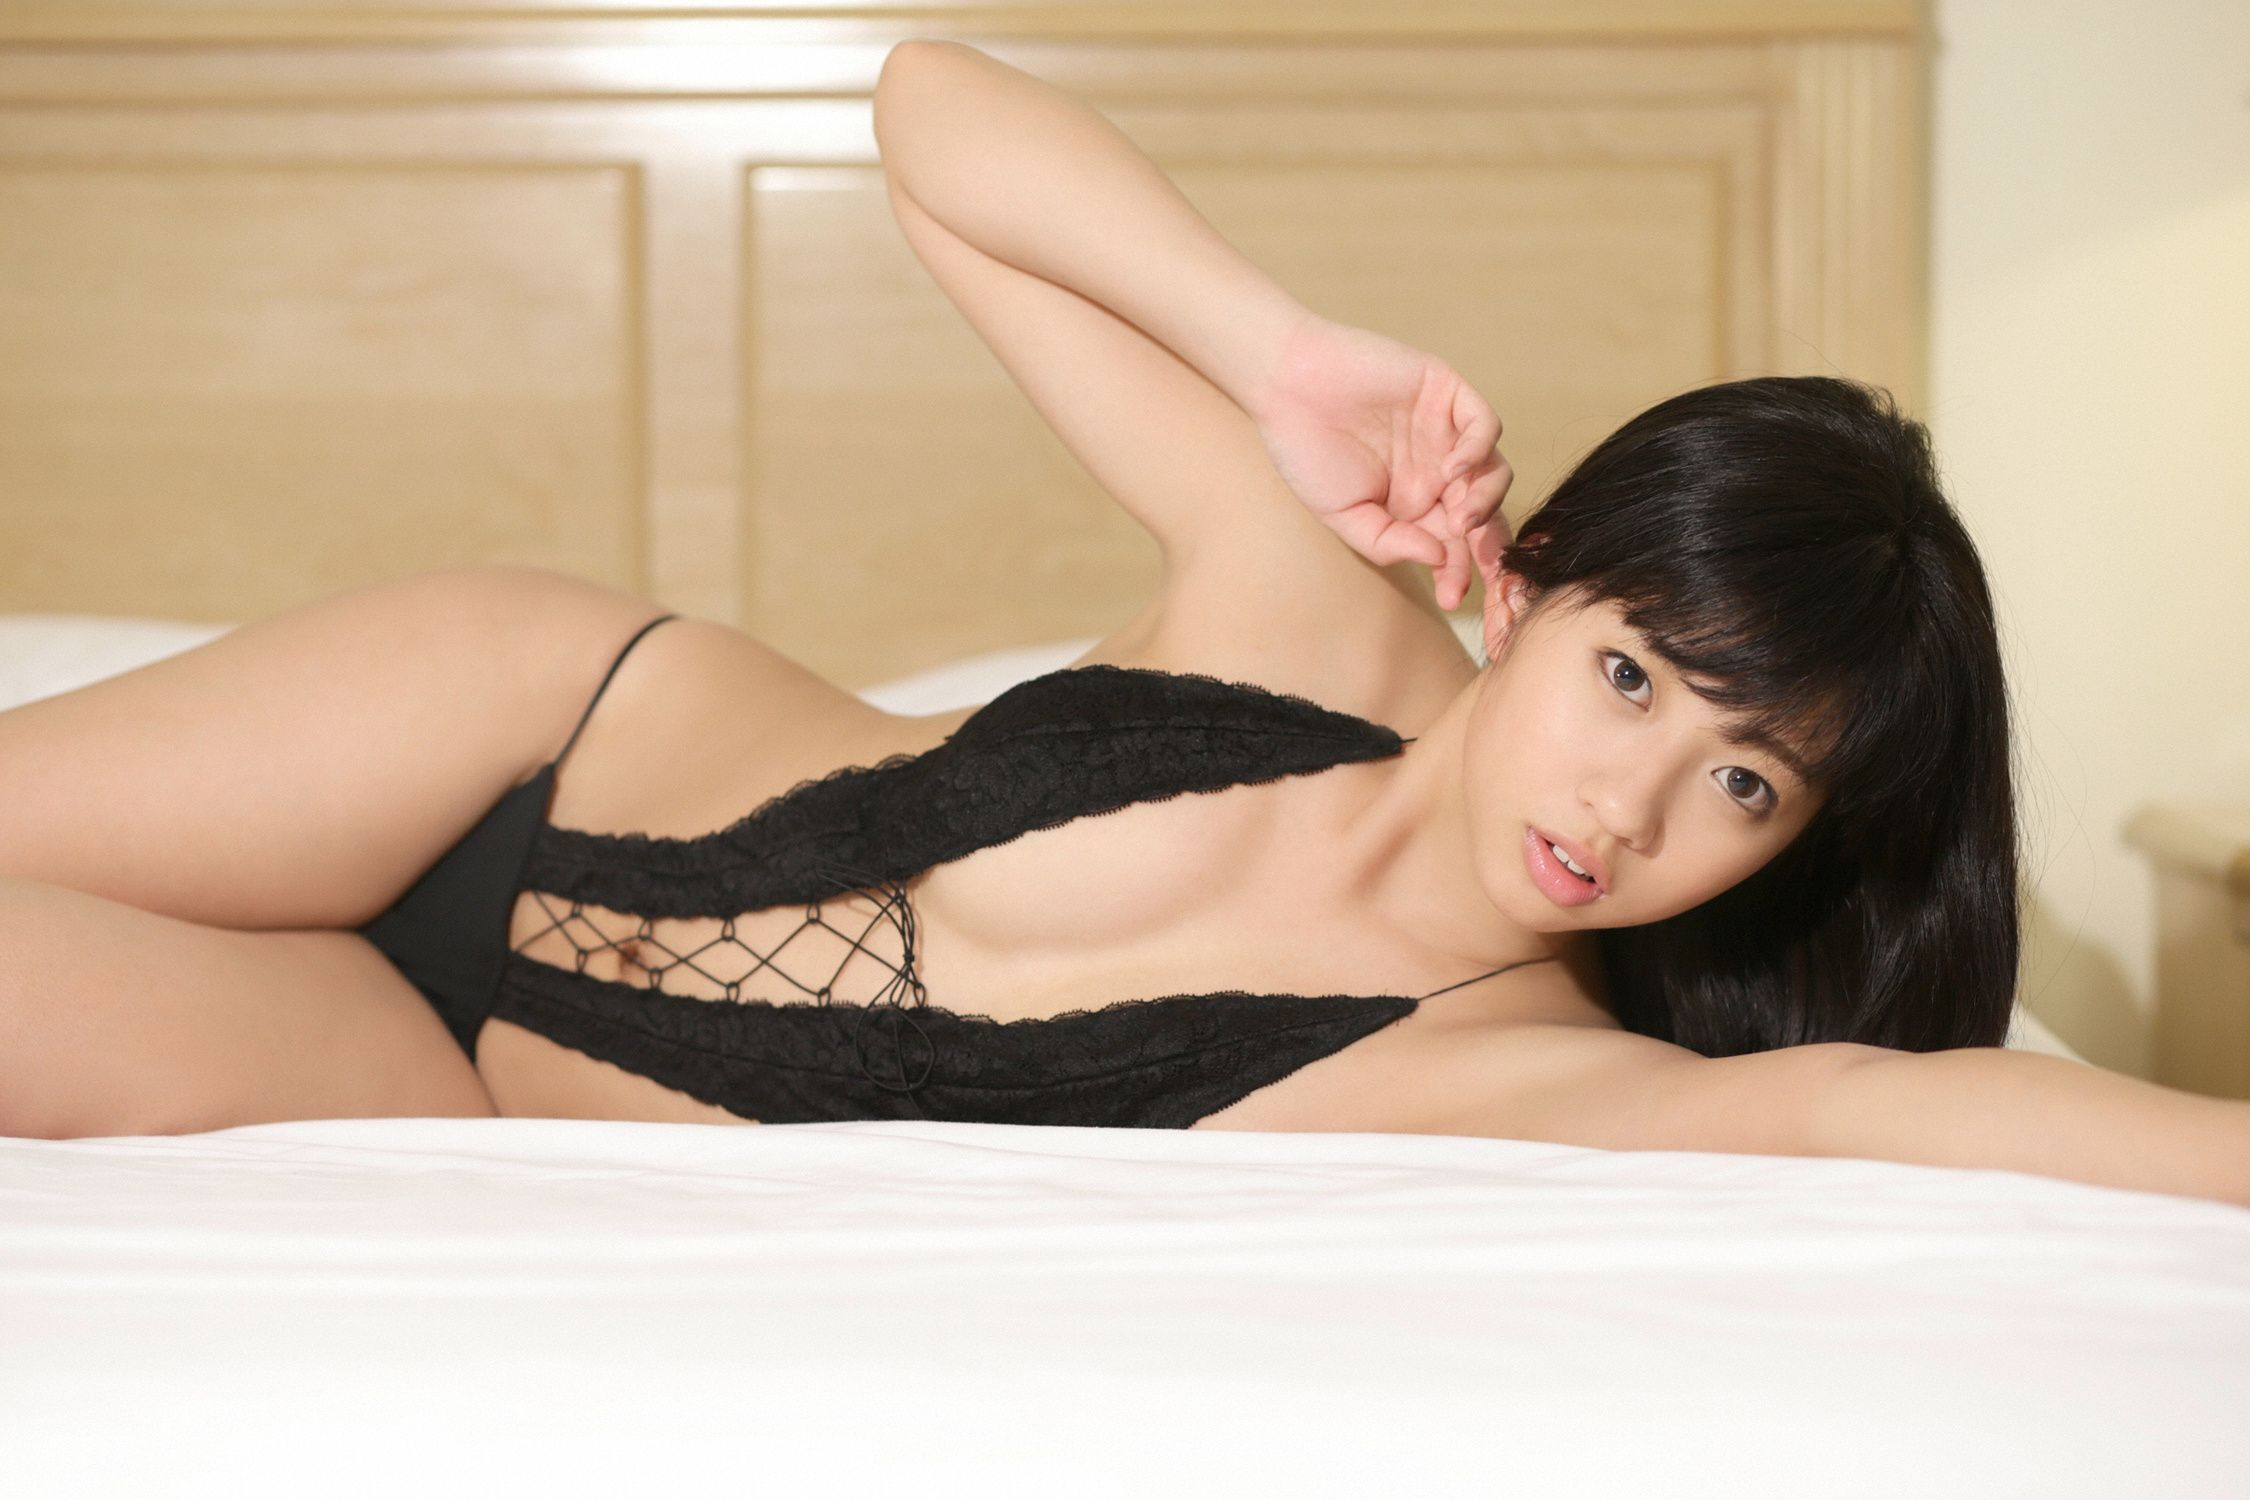 Ayaka Onuki an active female college student with a wonderful body style and fine skin076